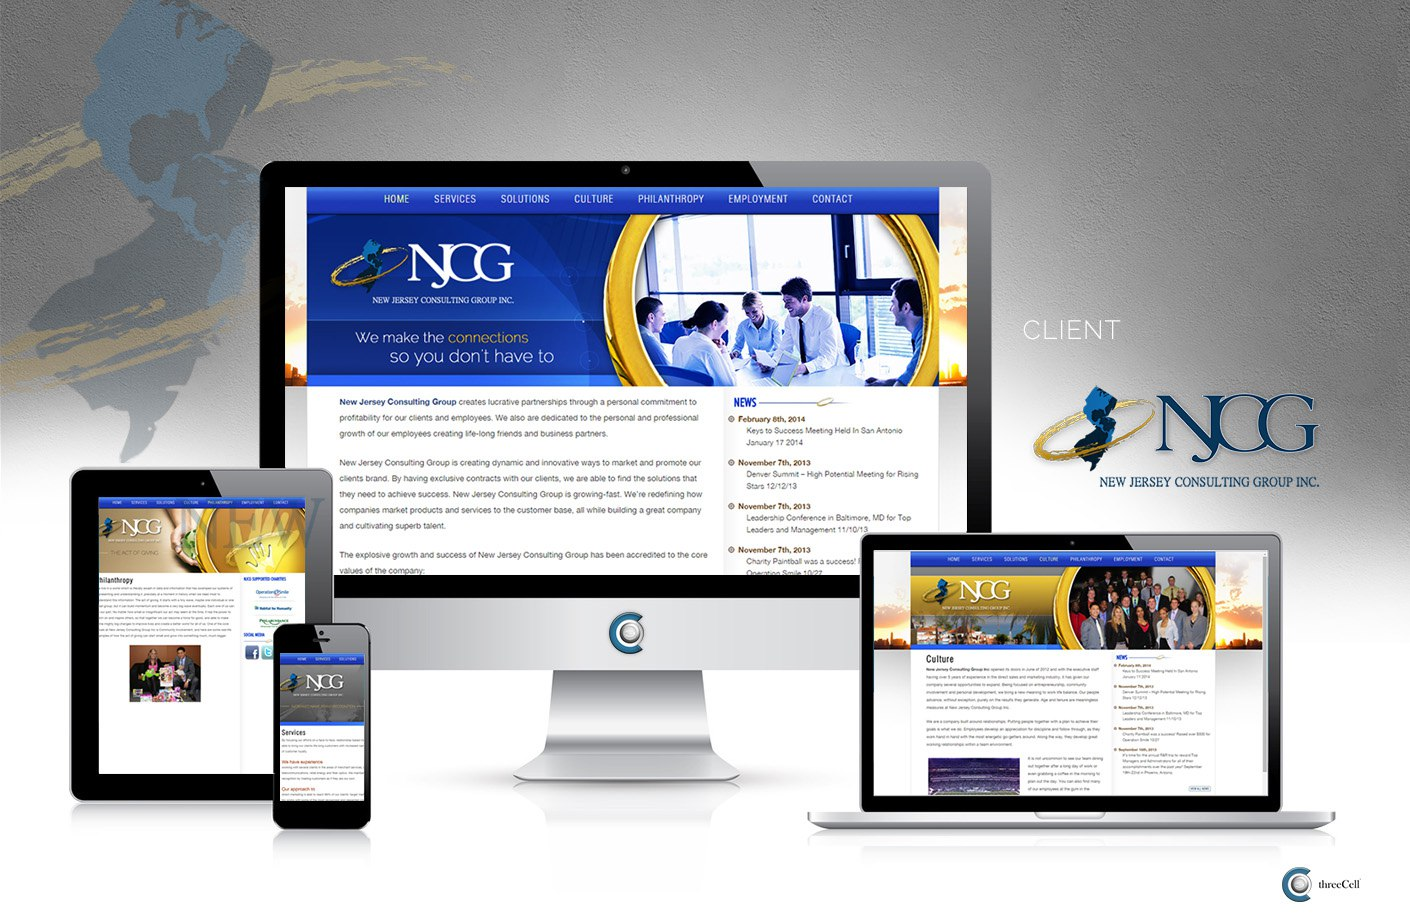 New Jersey Consulting Group - ThreeCell Web Design